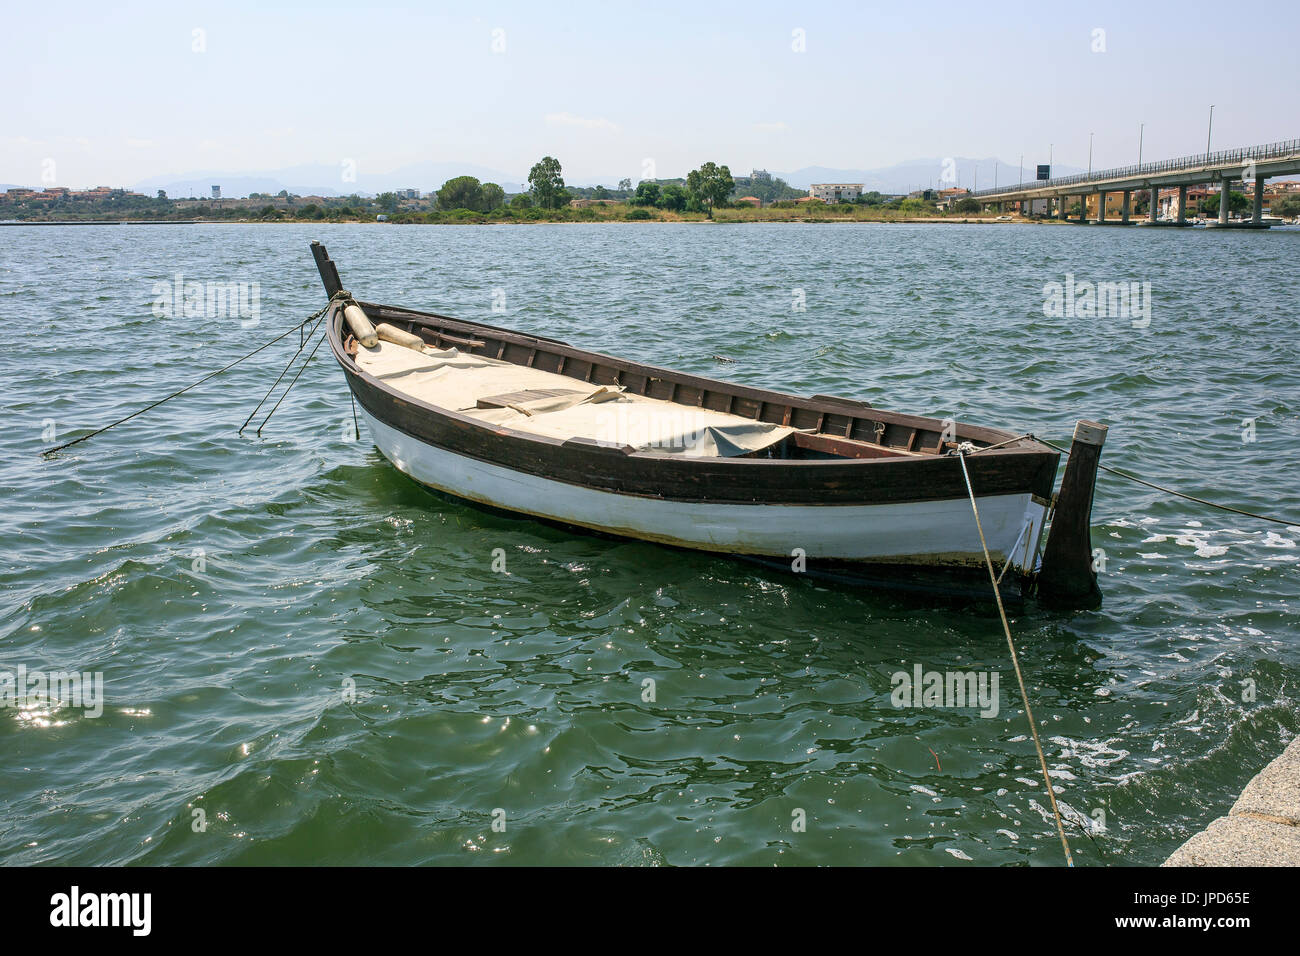 Little Wooden Boat In A River Side